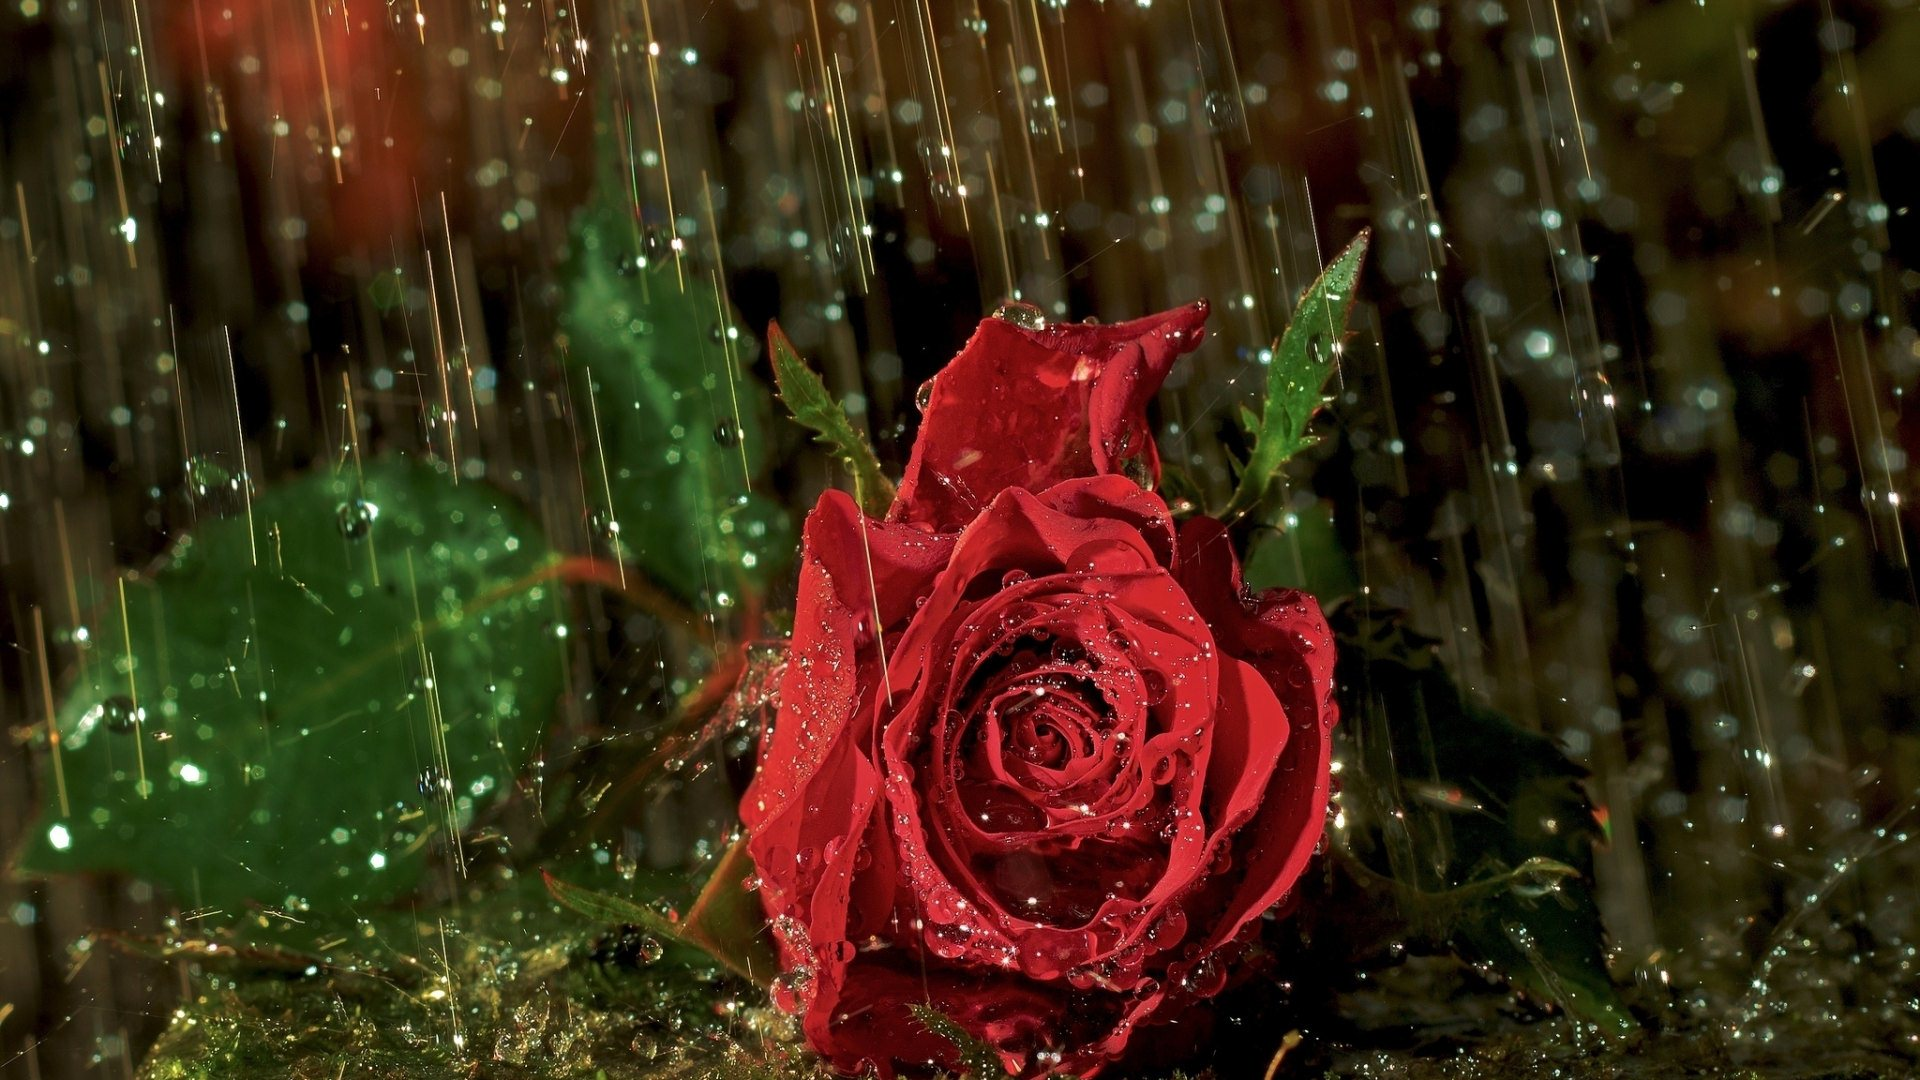 Rose in Rain HD Wallpapers 1920x1080